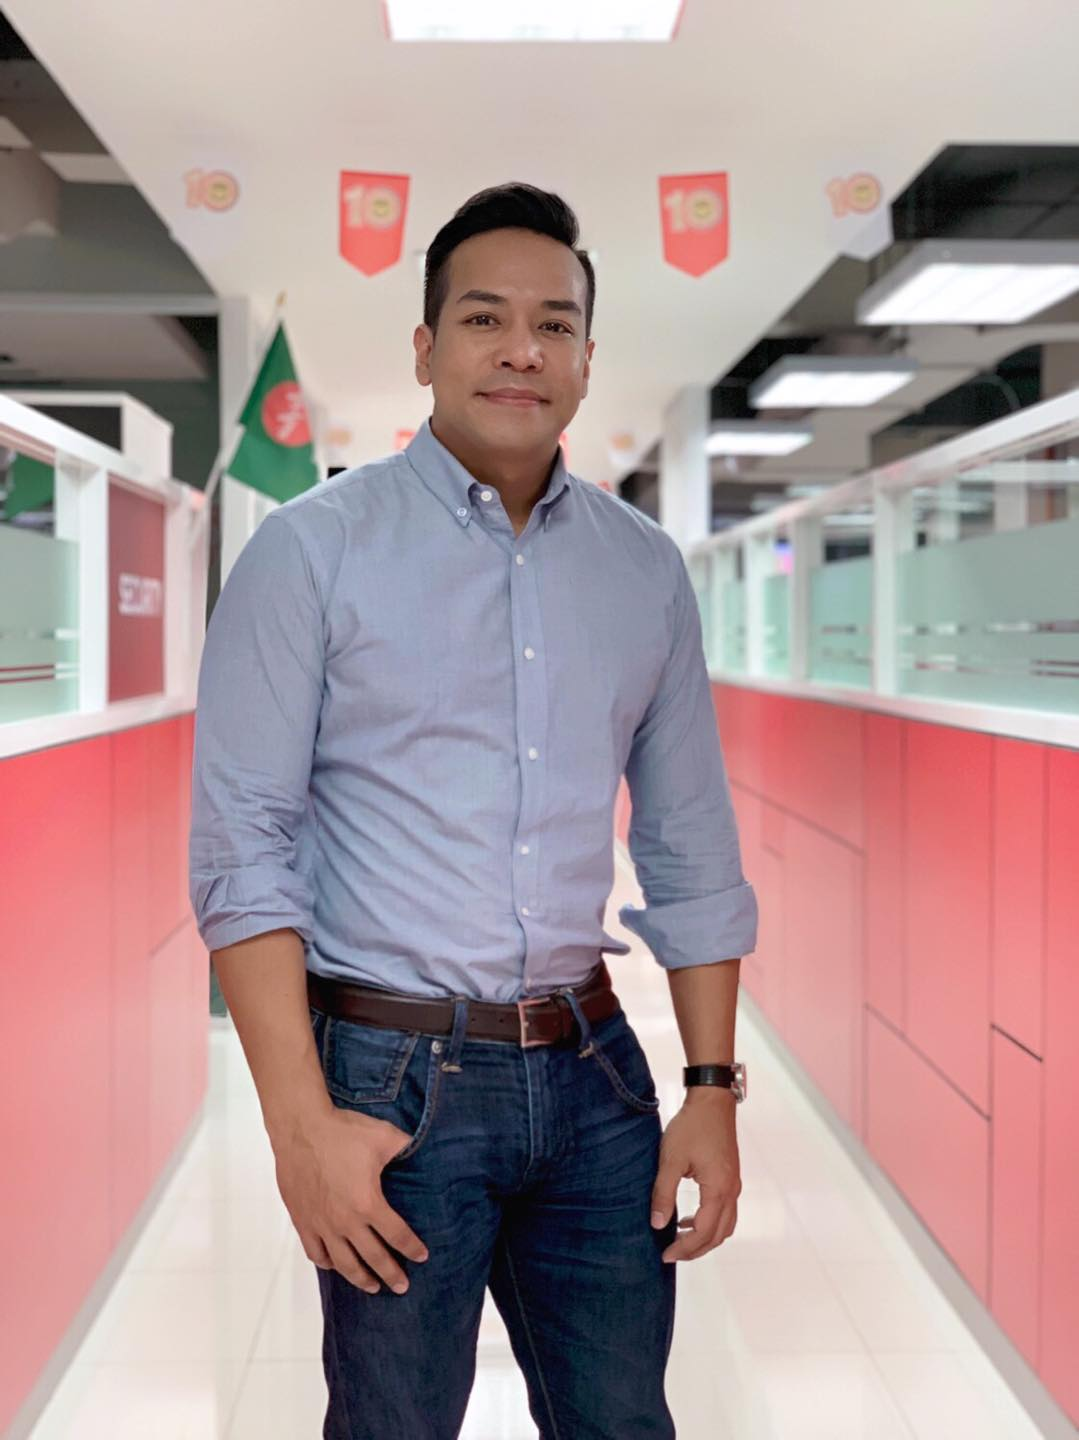 AirAsia truly cares about Allstars' career growth. I began as a check-in staff at the airport; today I'm a business development manager who looks after scheduling, network planning and airline regulatory affairs. - Tanus Kerdsombut (Dome) -